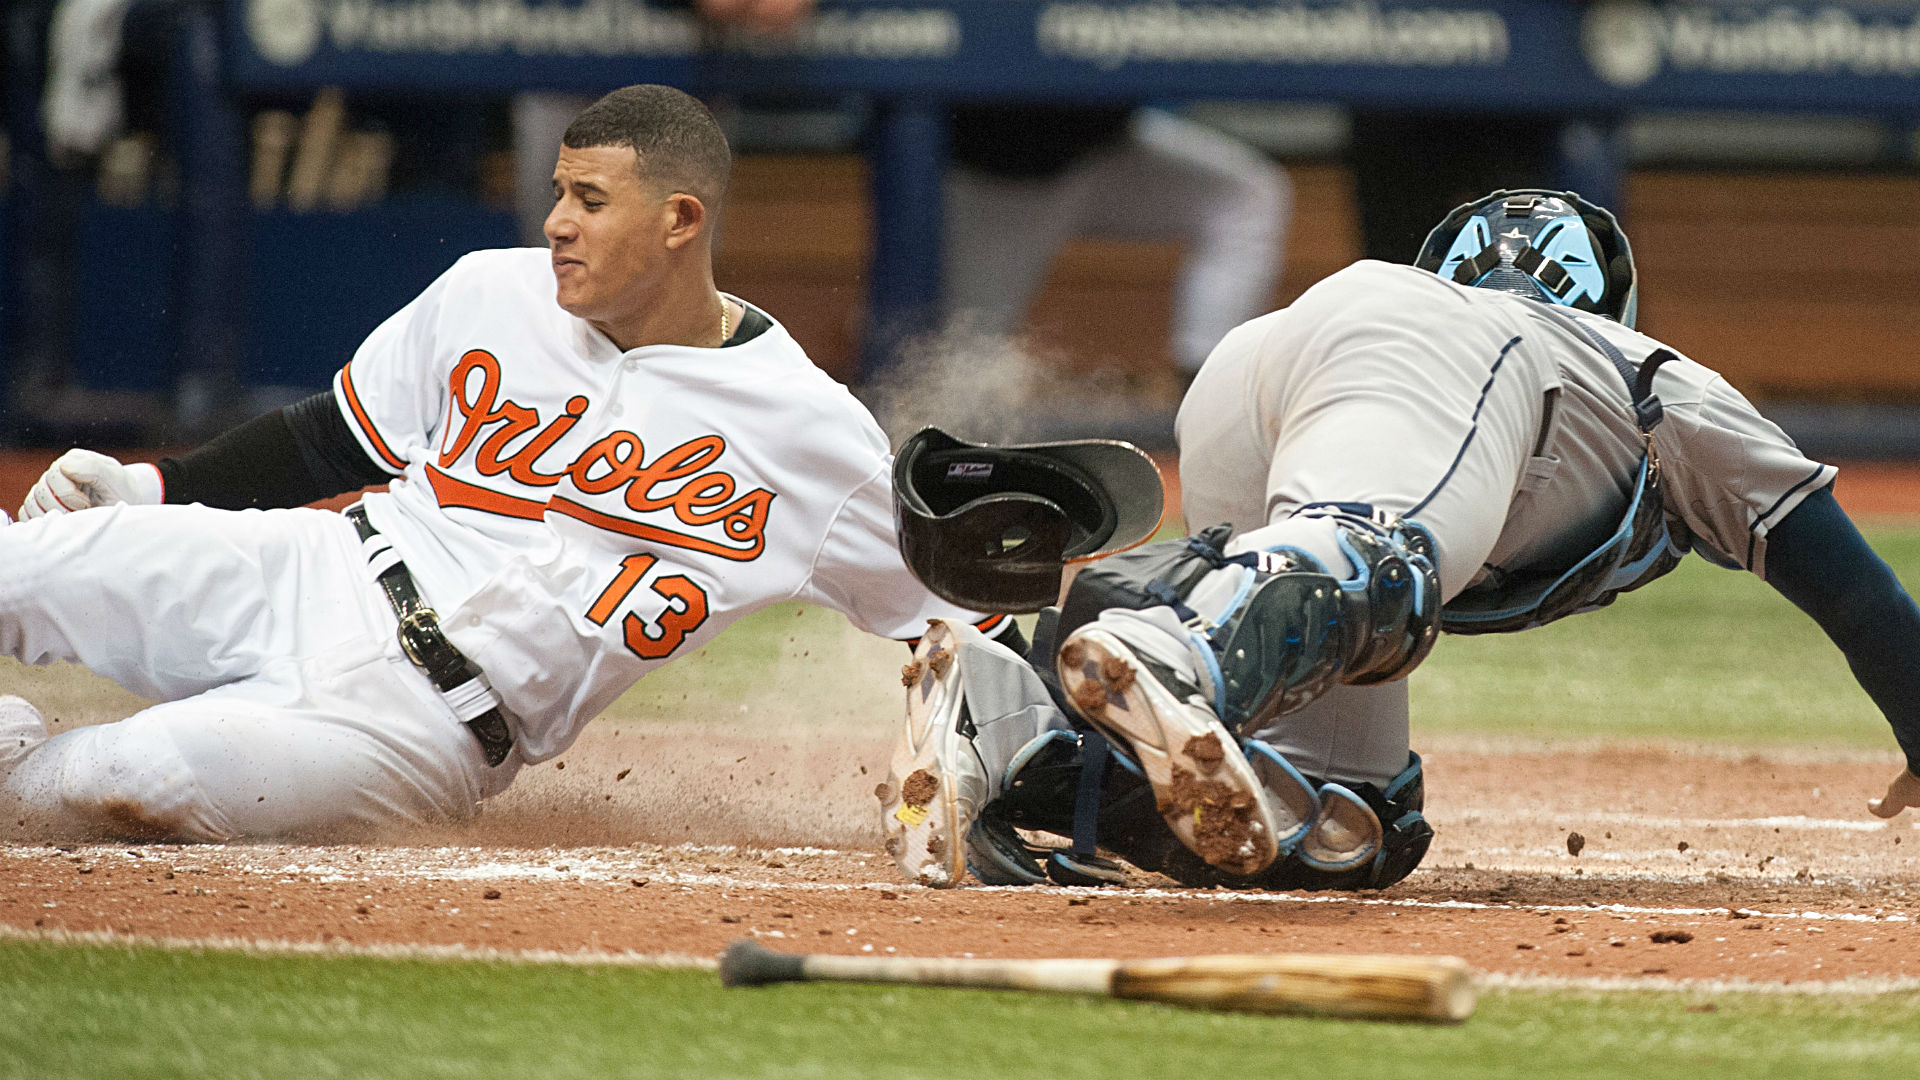 Orioles happy to defend AL East crown free from outside expectations